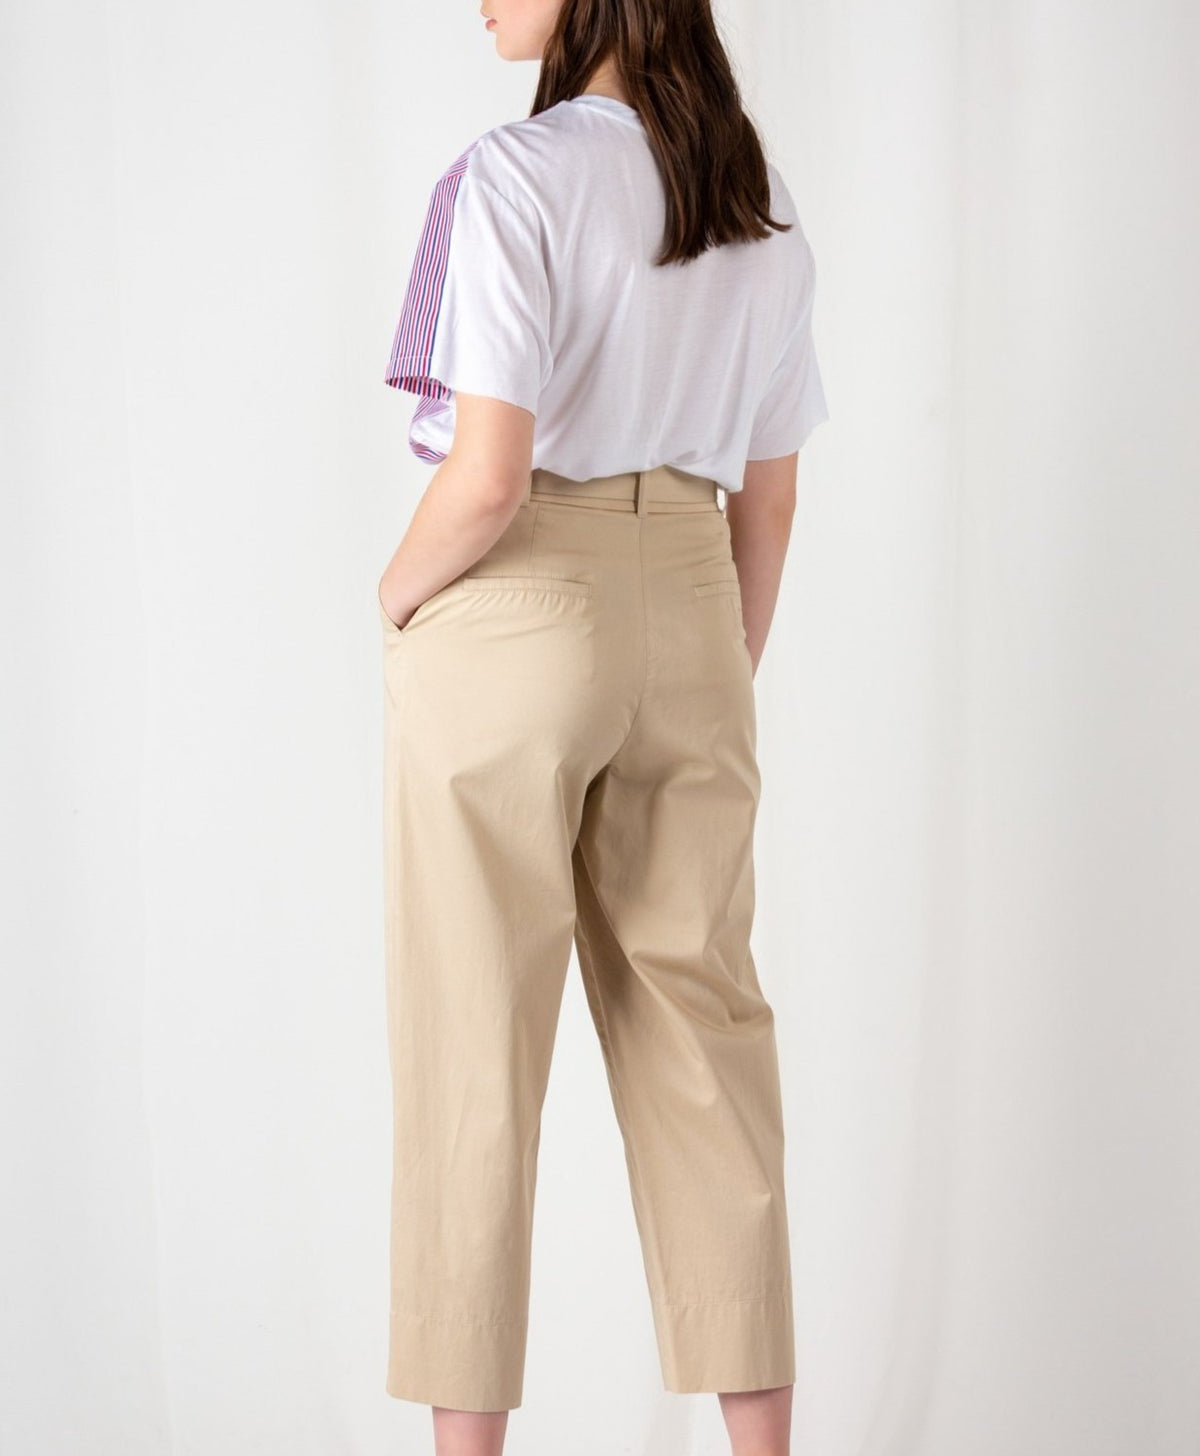 Camel | Pants | Soft Camel